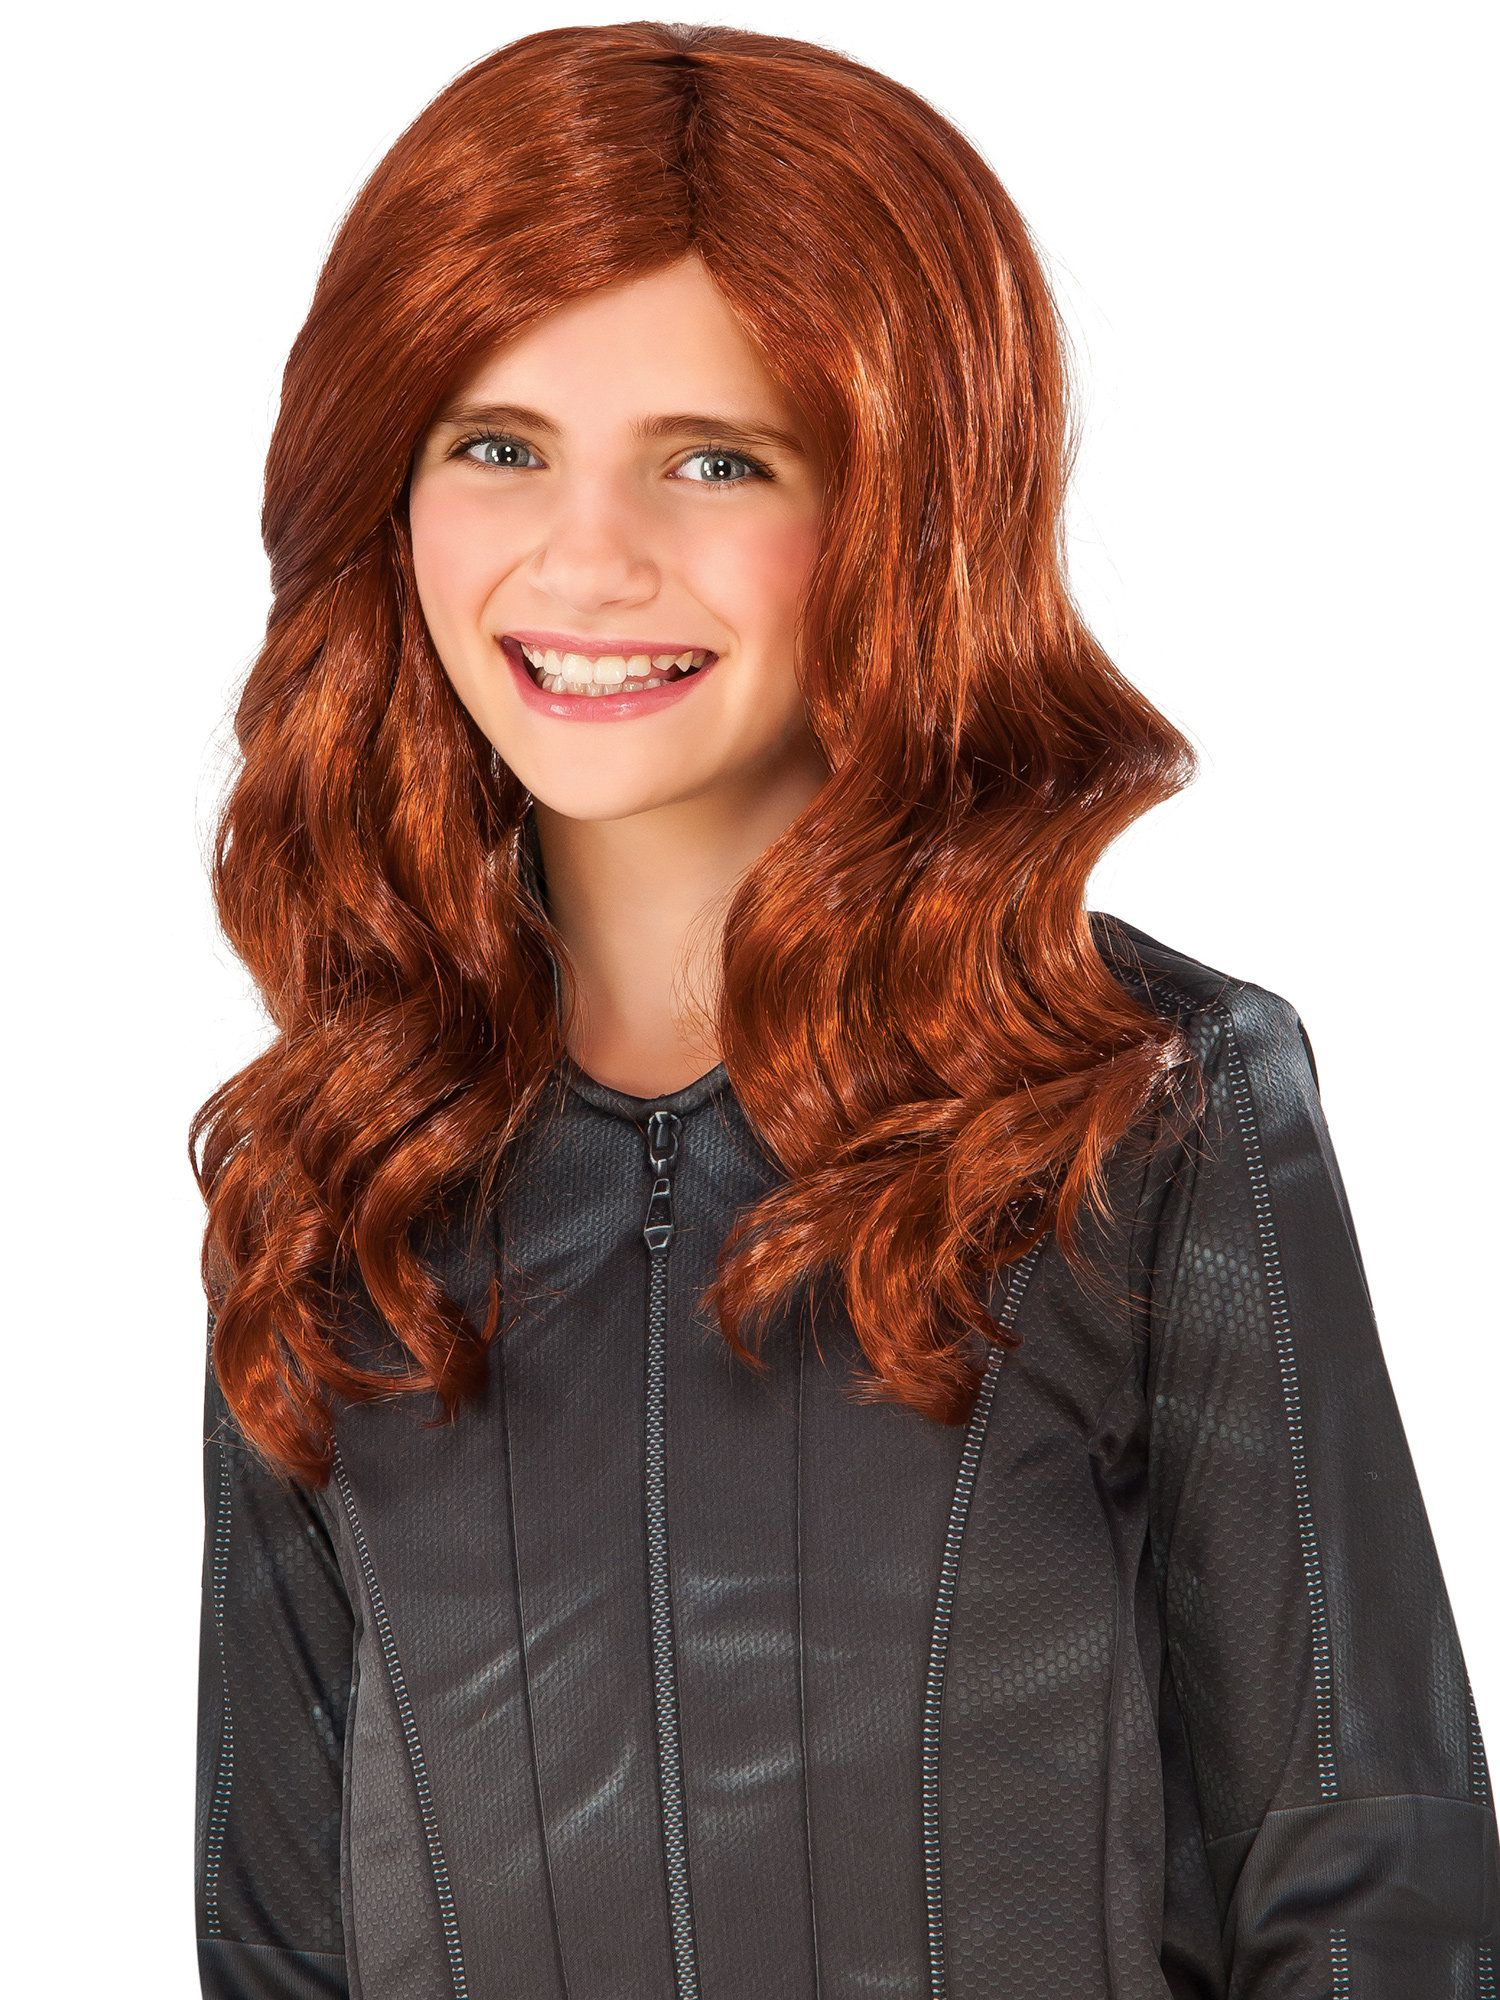 Marvelu0027s Captain America Civil War Black Widow Child Wig - Kids Halloween Costume Accessory | BuyCostumes.com  sc 1 st  BuyCostumes.com & Marvelu0027s Captain America: Civil War Black Widow Child Wig - Kids ...